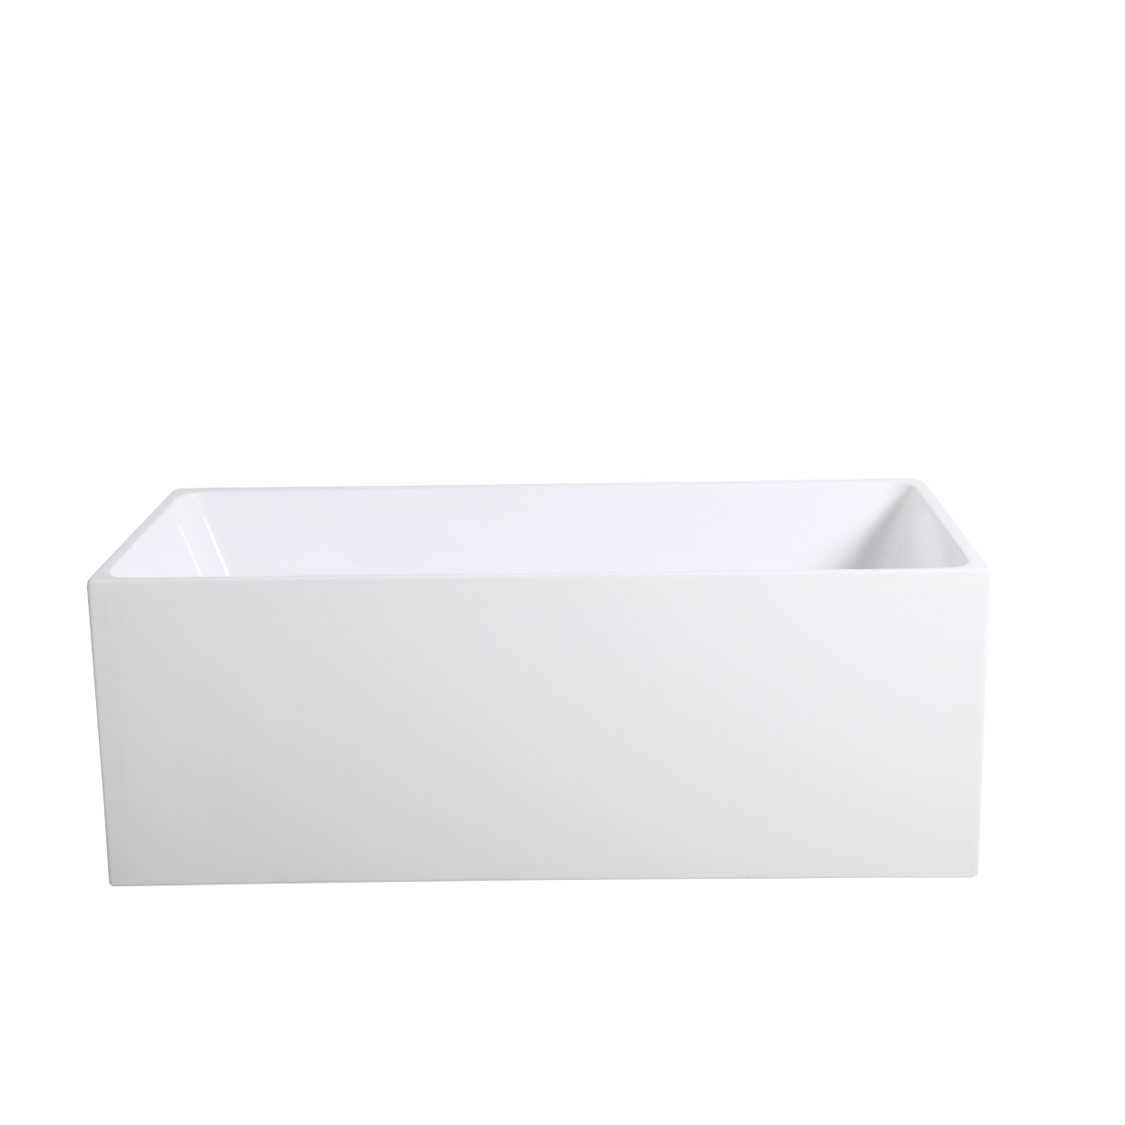 THEO 1700mm Multi Fit Bathtub